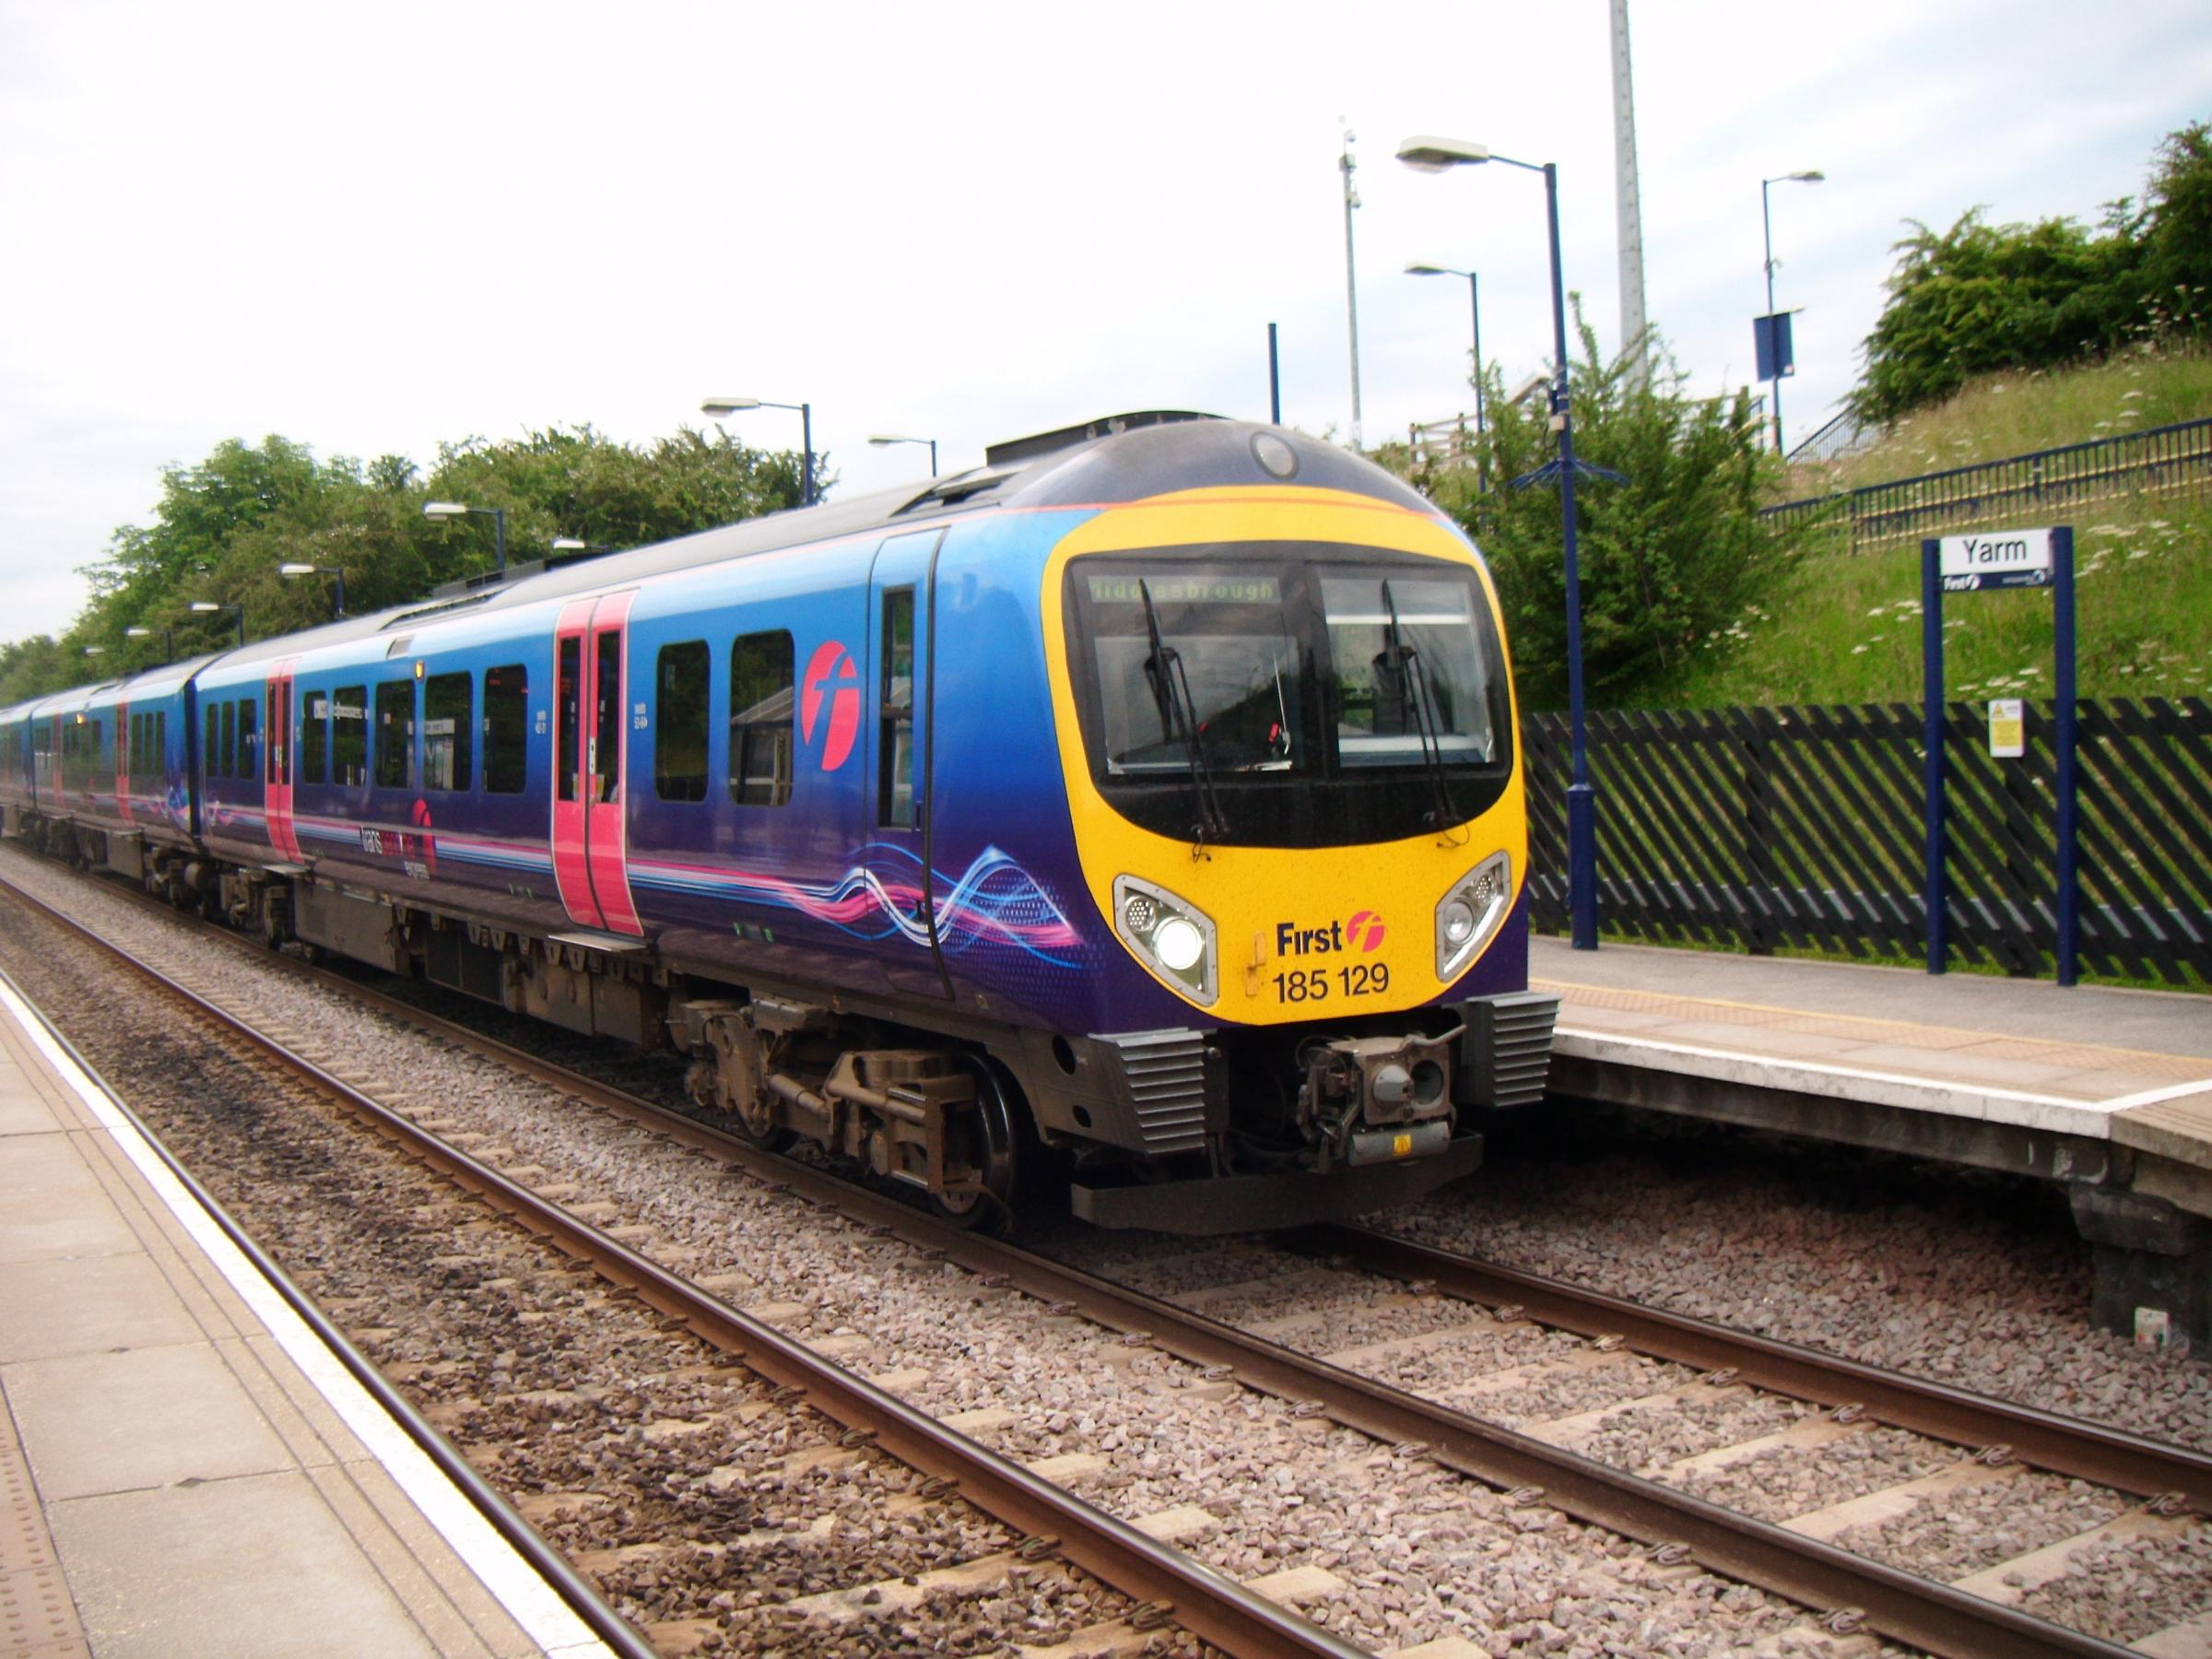 INCIDENT: The passenger fell ill on a TransPennine Express train.